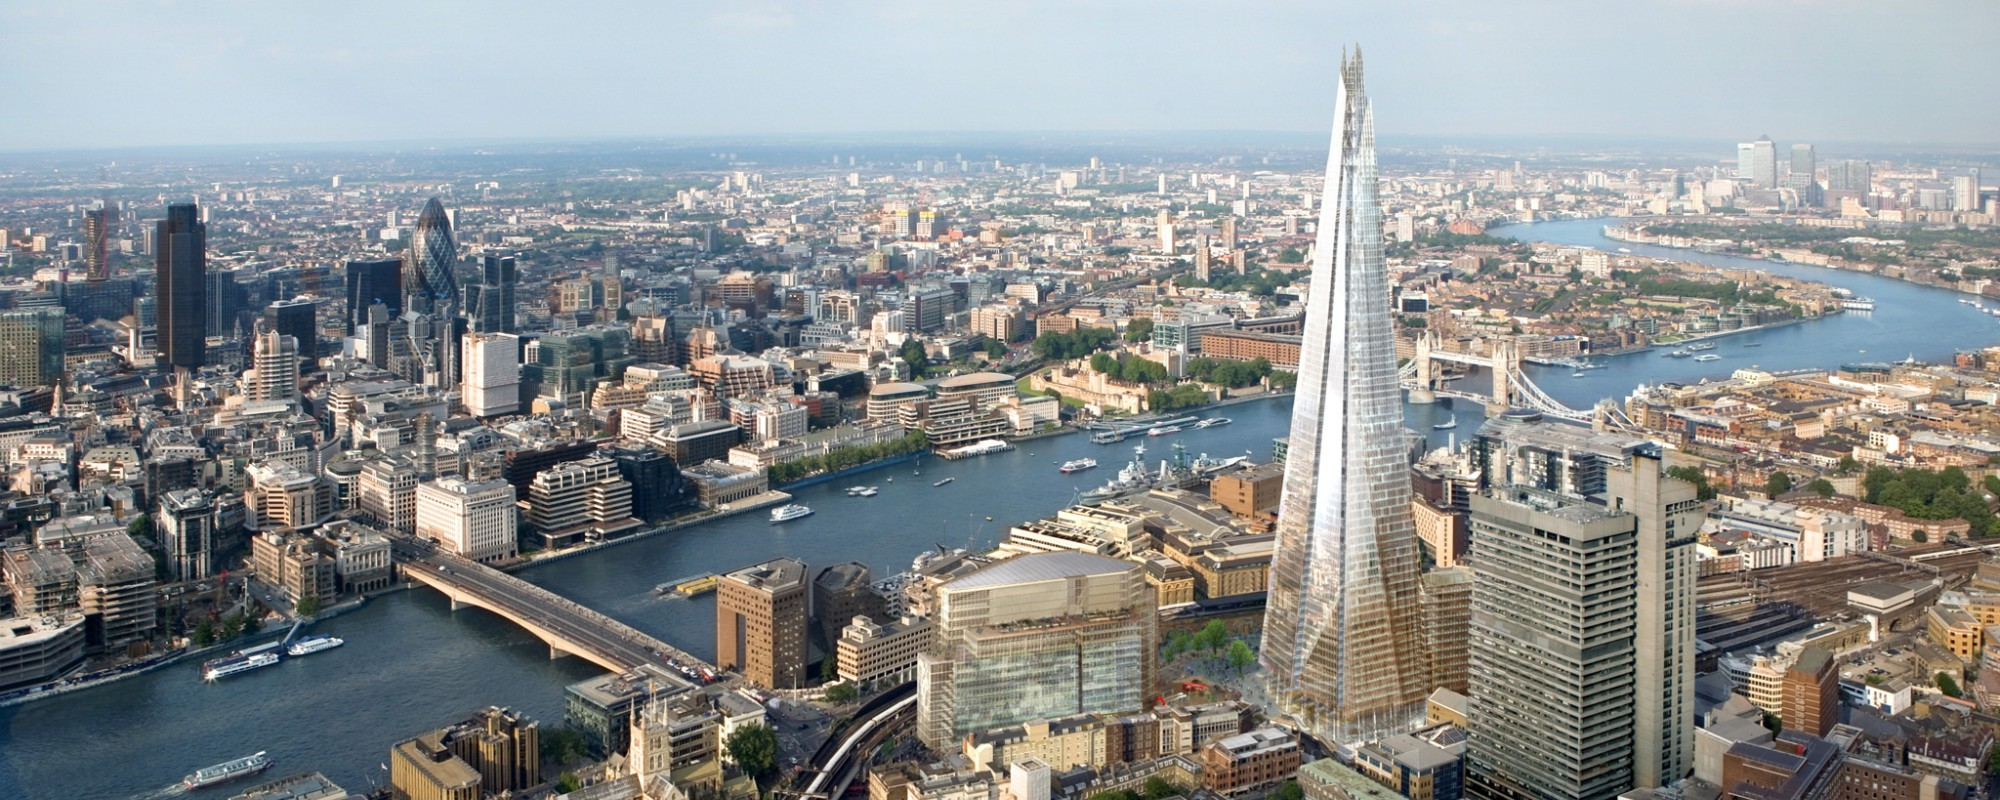 delmatic lighting control system the shard